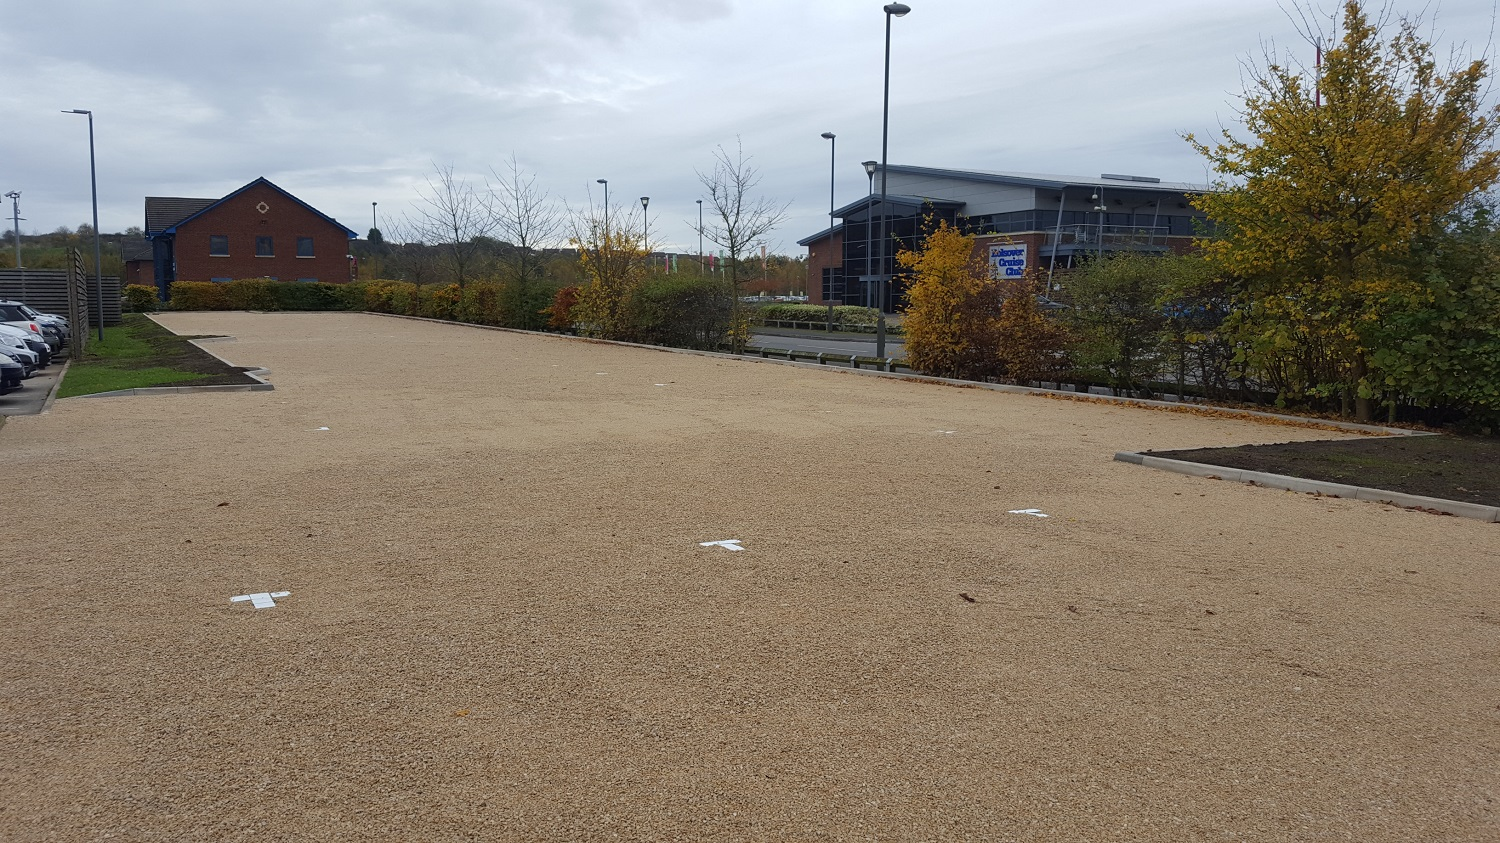 F23 Construction and Gravel Grids to Car Park Extension at NHS Treatment Centre in Barlborough